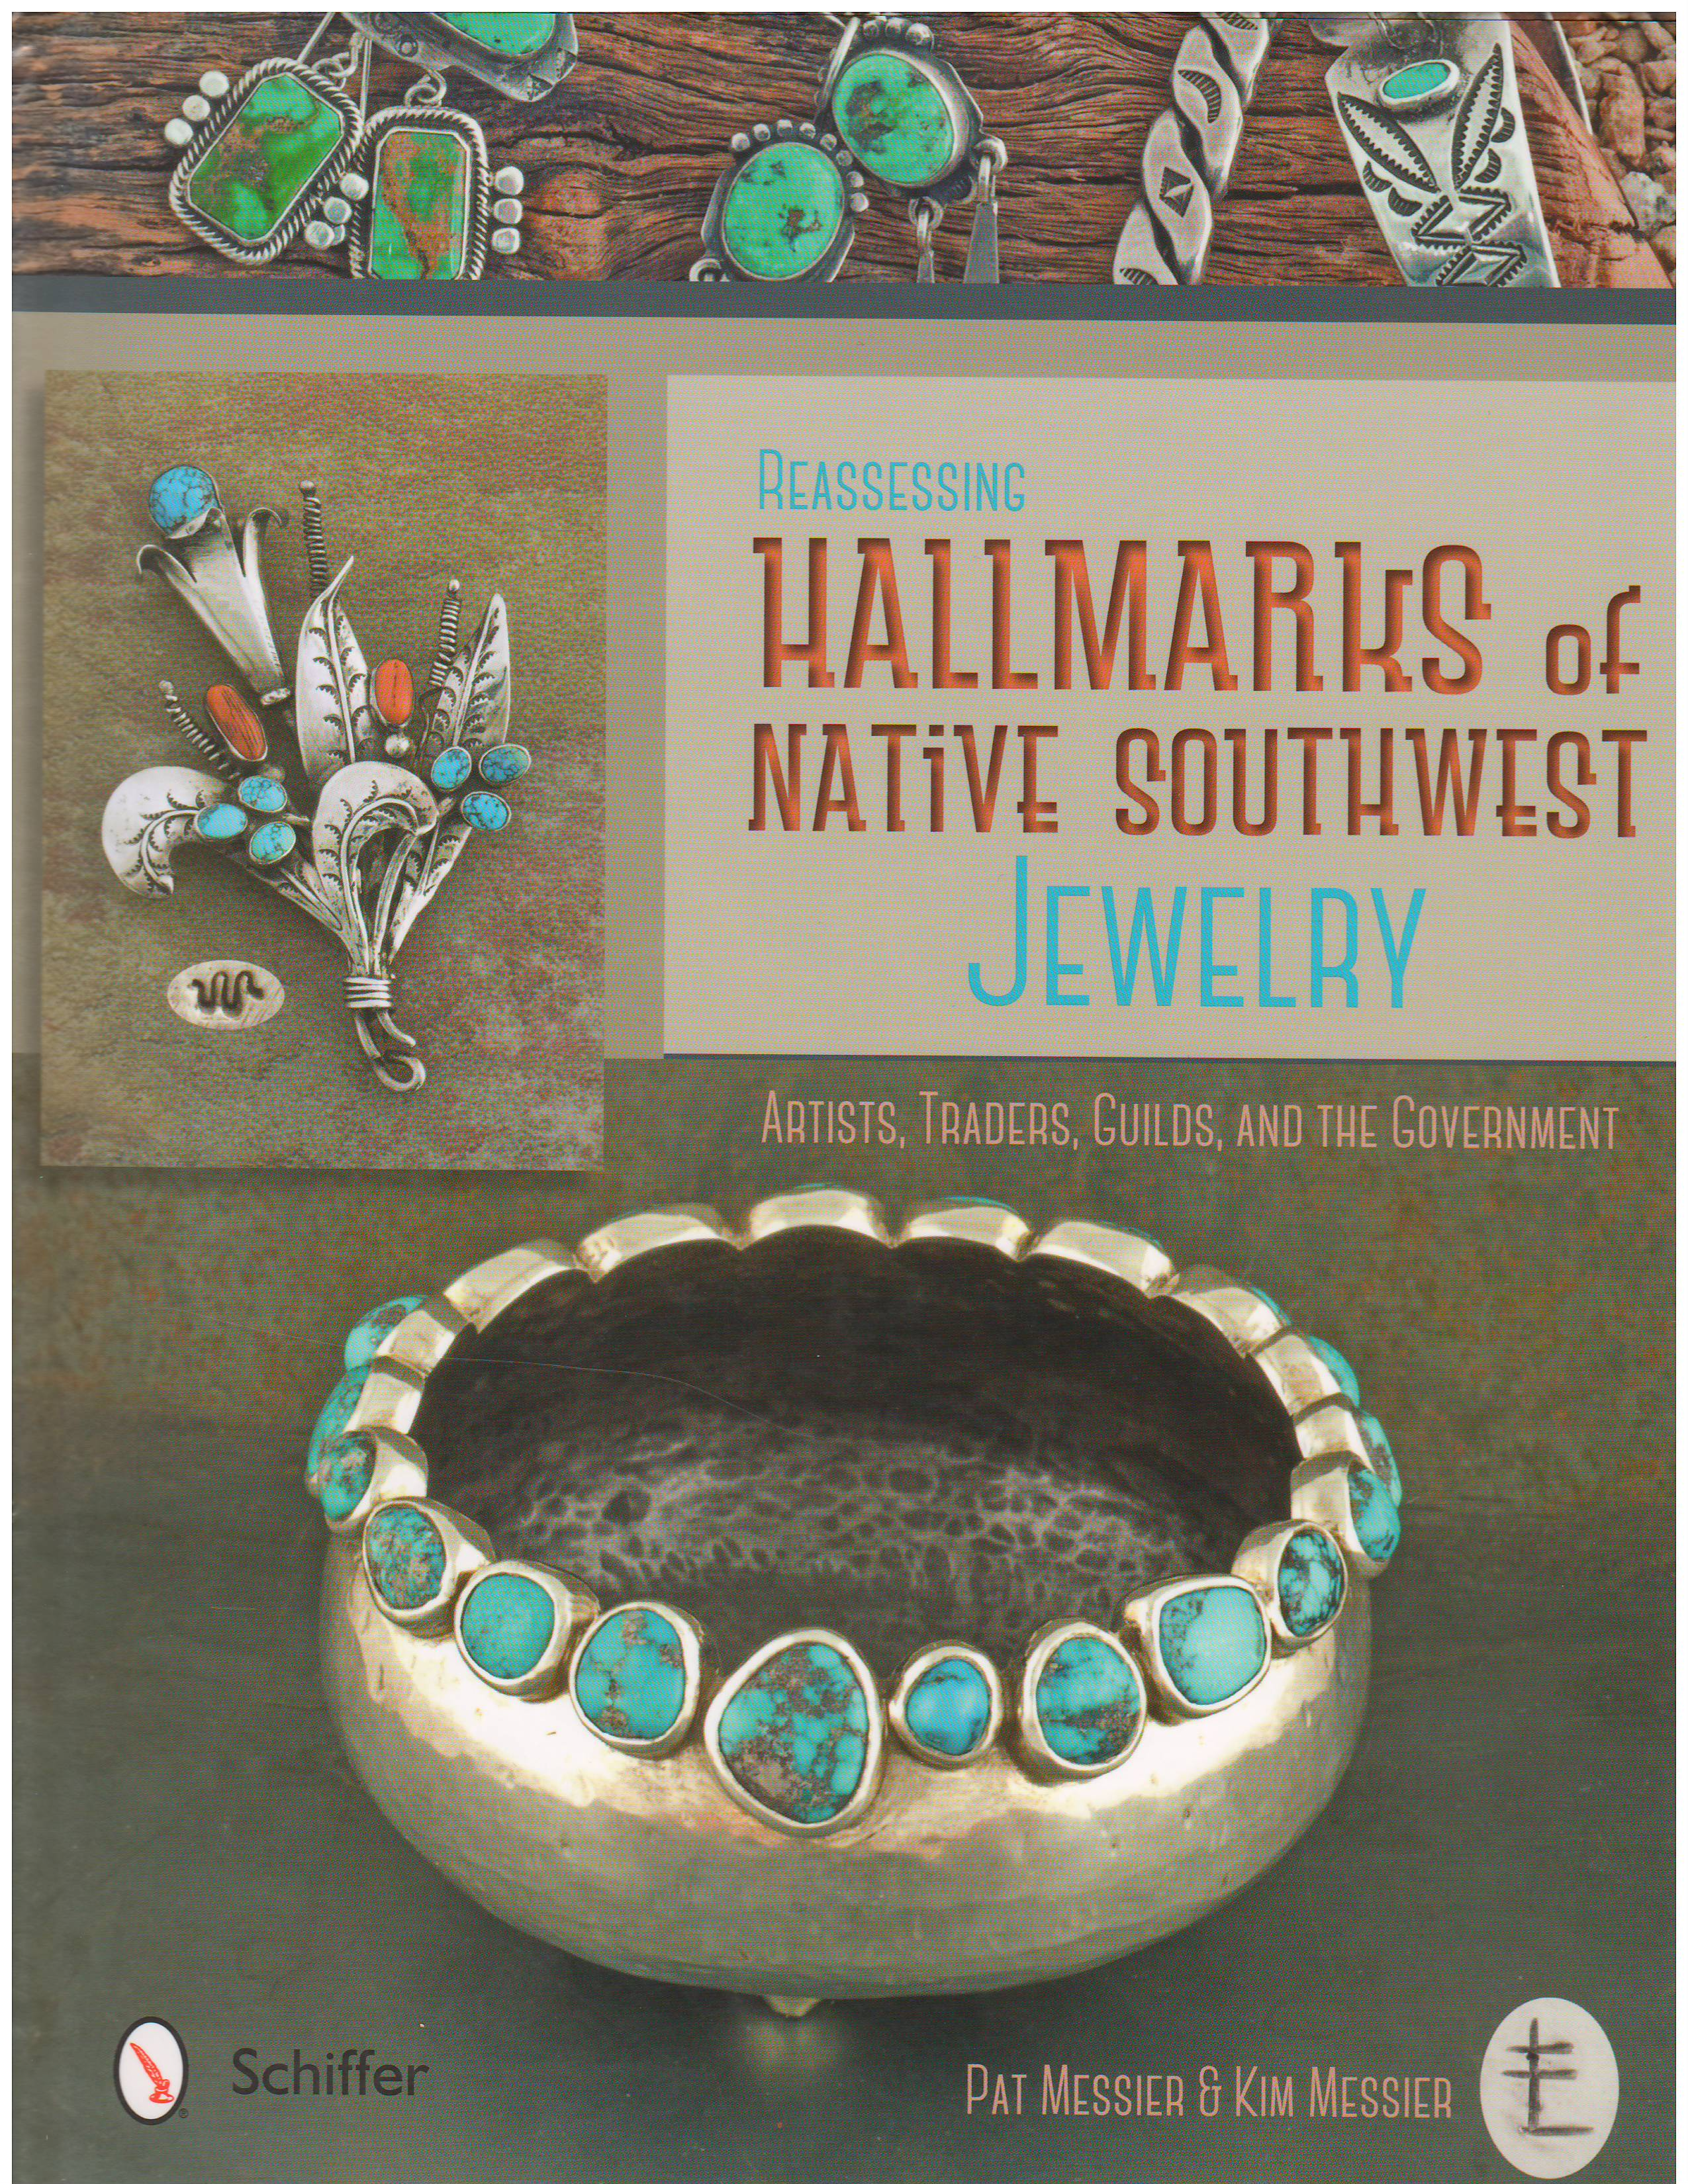 Bell Trading Post History and Hallmarks | Native American Jewelry Tips